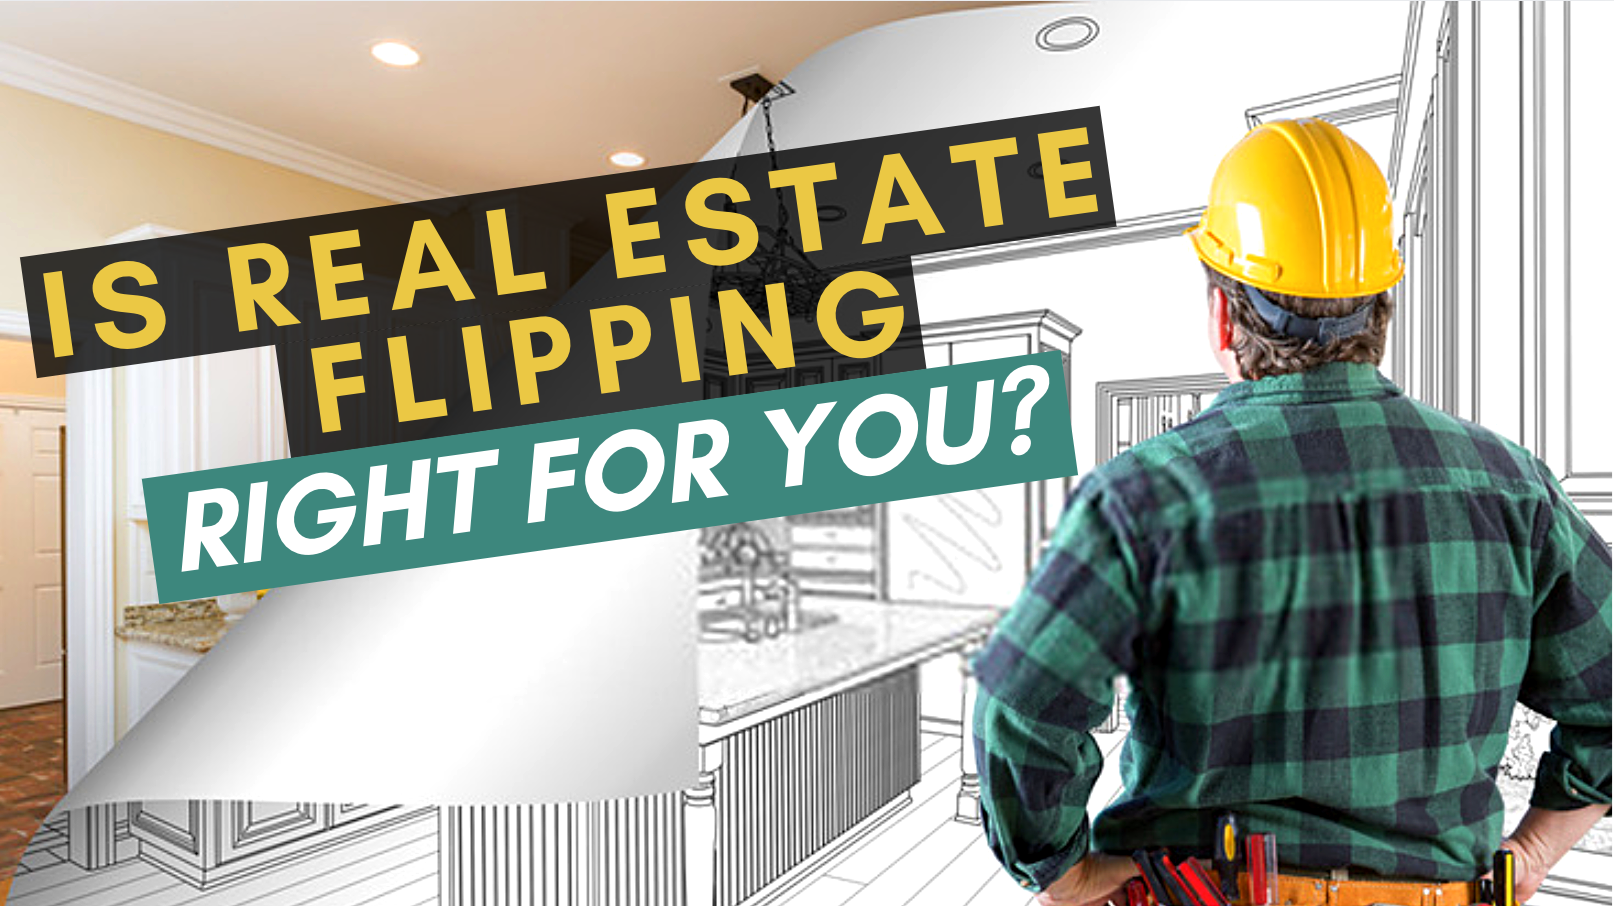 Is Real Estate Flipping Right For You?